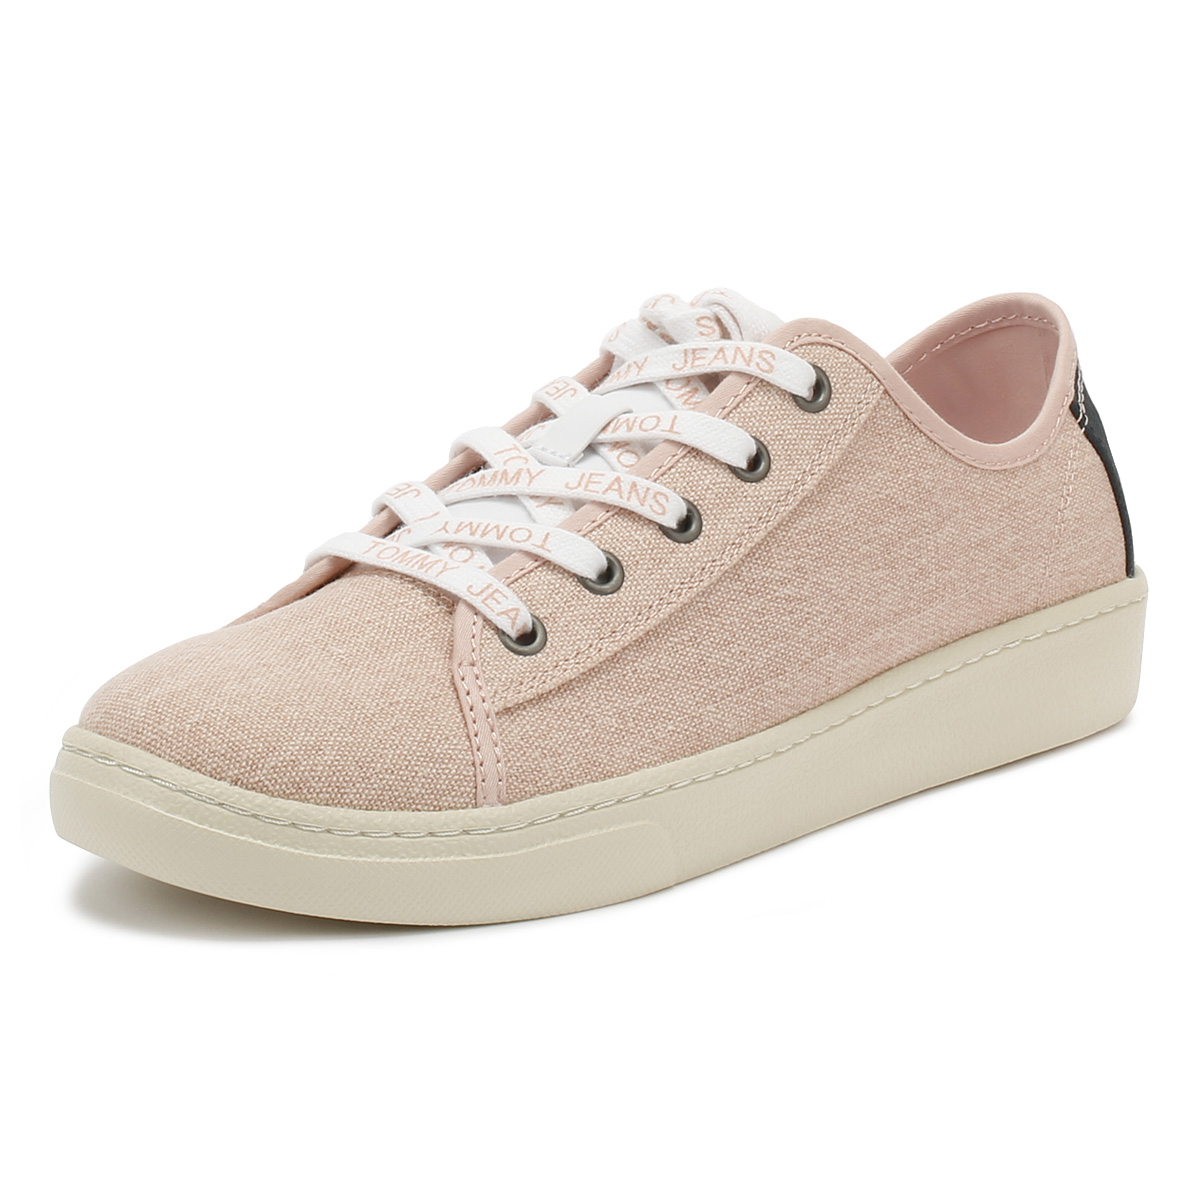 Tommy Jeans Damenschuhe Trainers Up Rose Cloud Niedrig Lace Up Trainers Sport Casual Schuhes d6bbe2